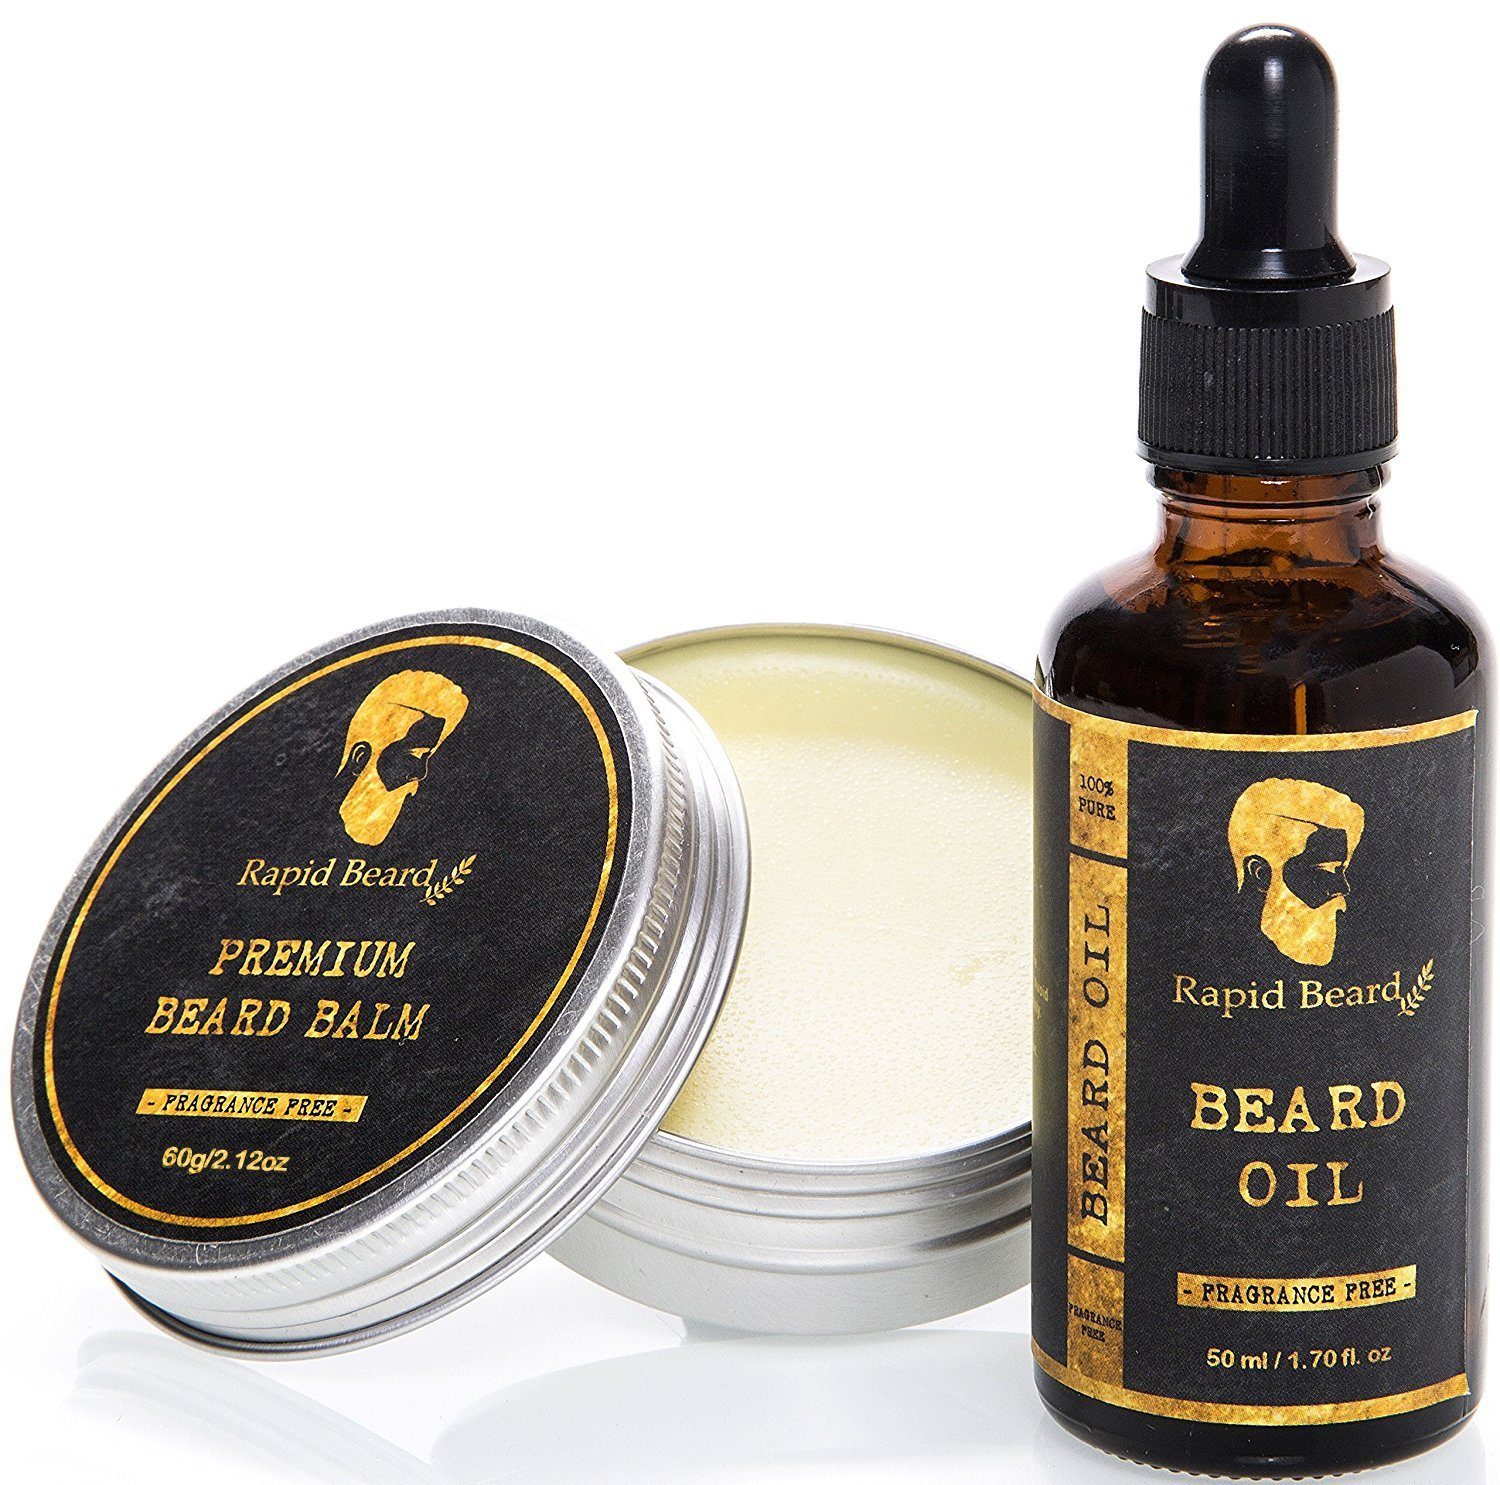 Beard Oil and Beard Balm Kit for Men Care - Unscented Leave in Beard Conditioner, Heavy Duty Beard Butter, Mustache Wax & Softener Gift set - for Beard and Mustache Styling, Shaping, Grooming & Growth Rapid Beard